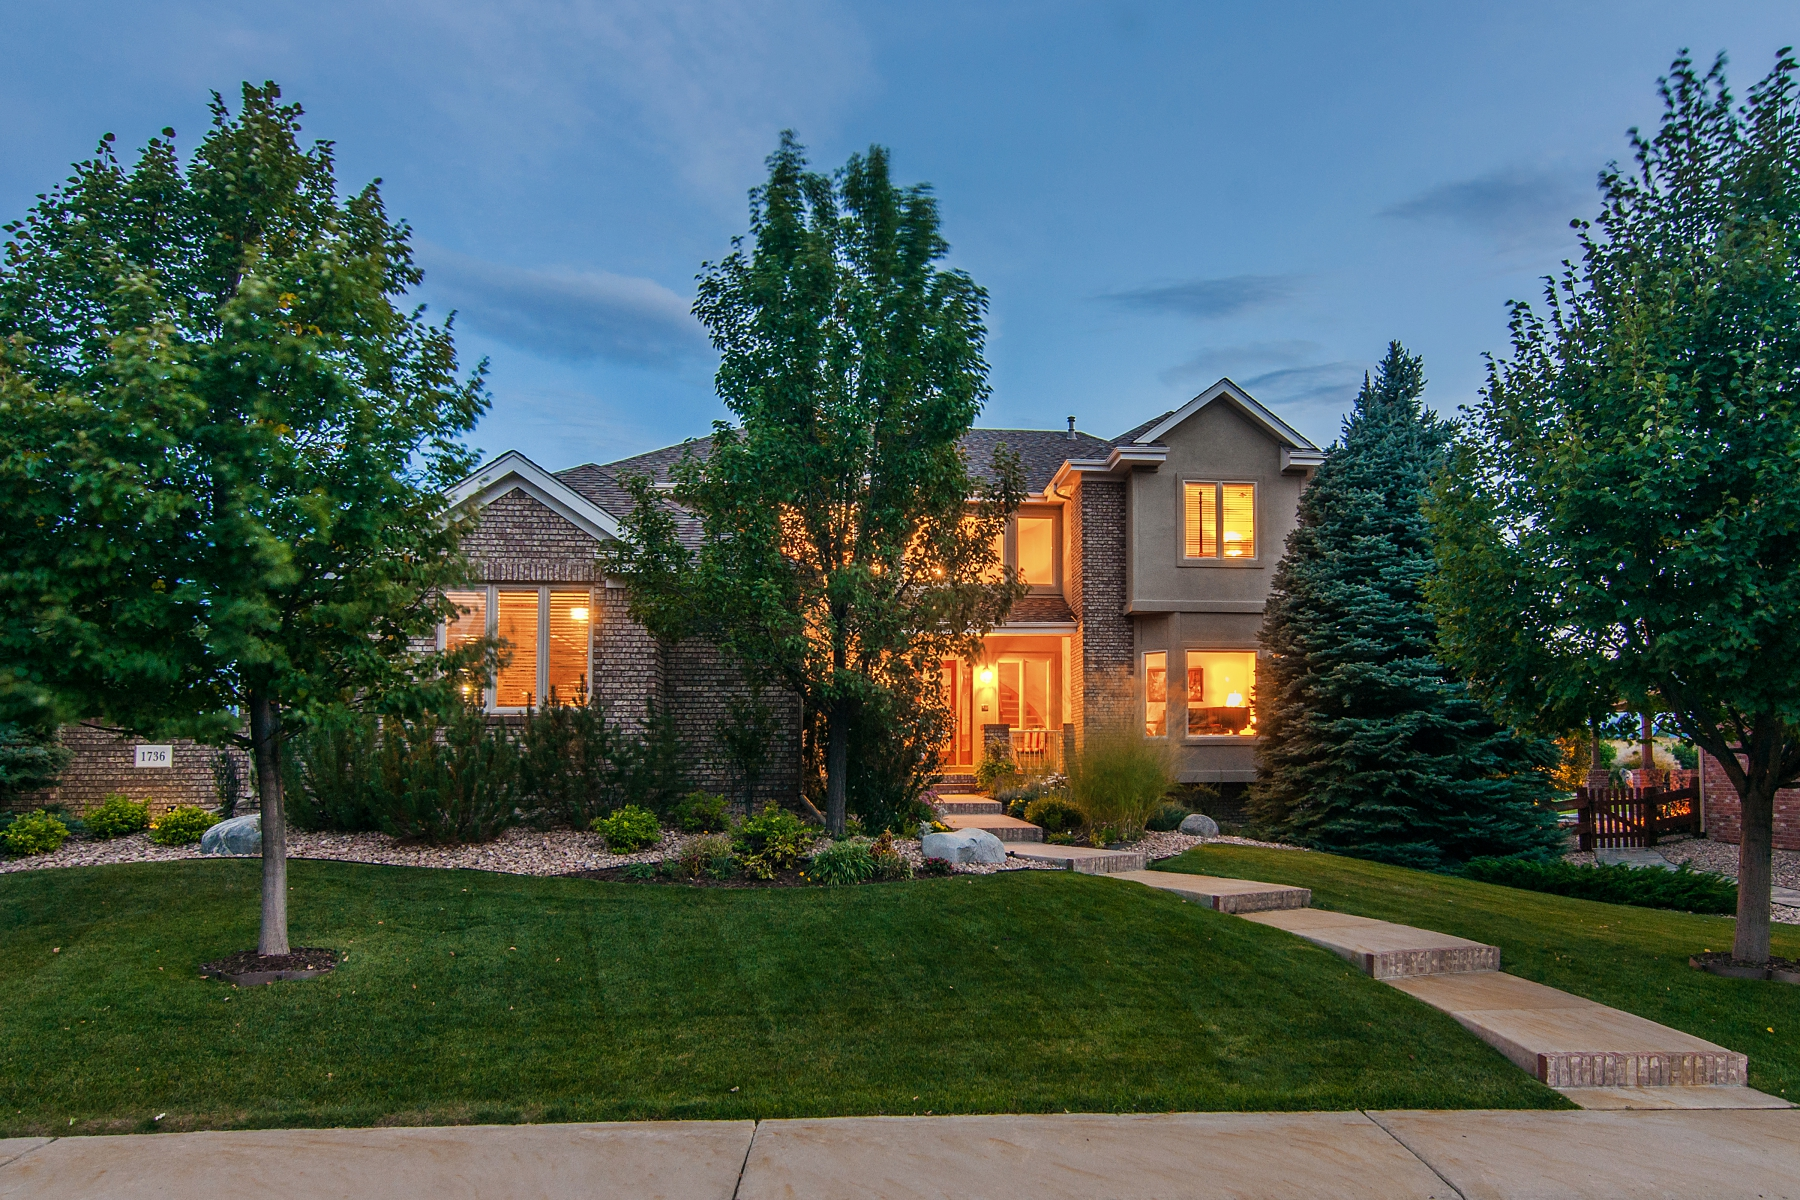 Single Family Home for Active at Stunning mountain views from this beautiful semi-custom home 1736 Ridgecrest Way Highlands Ranch, Colorado 80129 United States